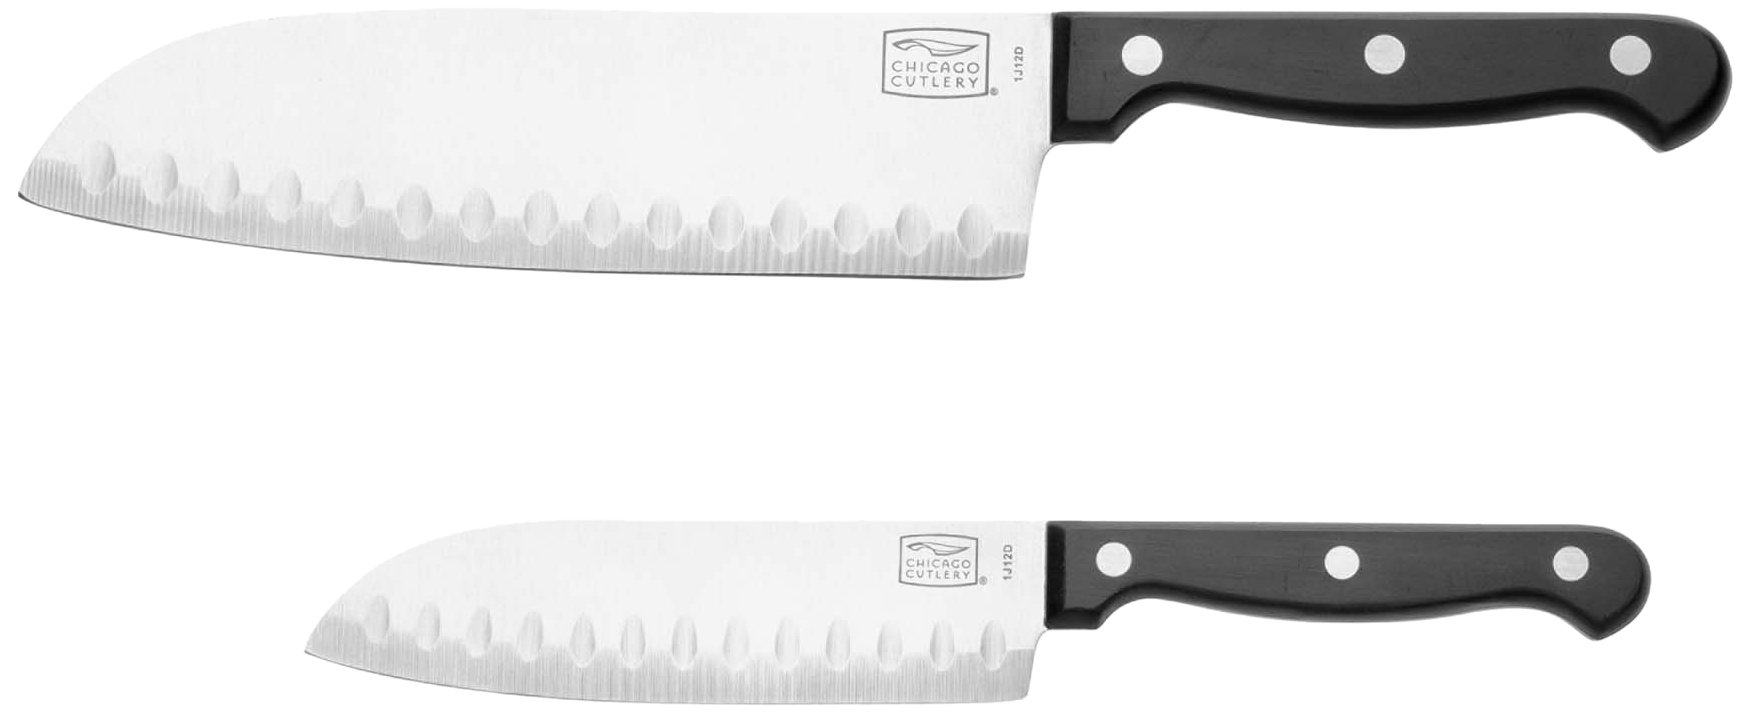 Chicago Cutlery Essentials Two Piece Knife Set by Chicago Cutlery